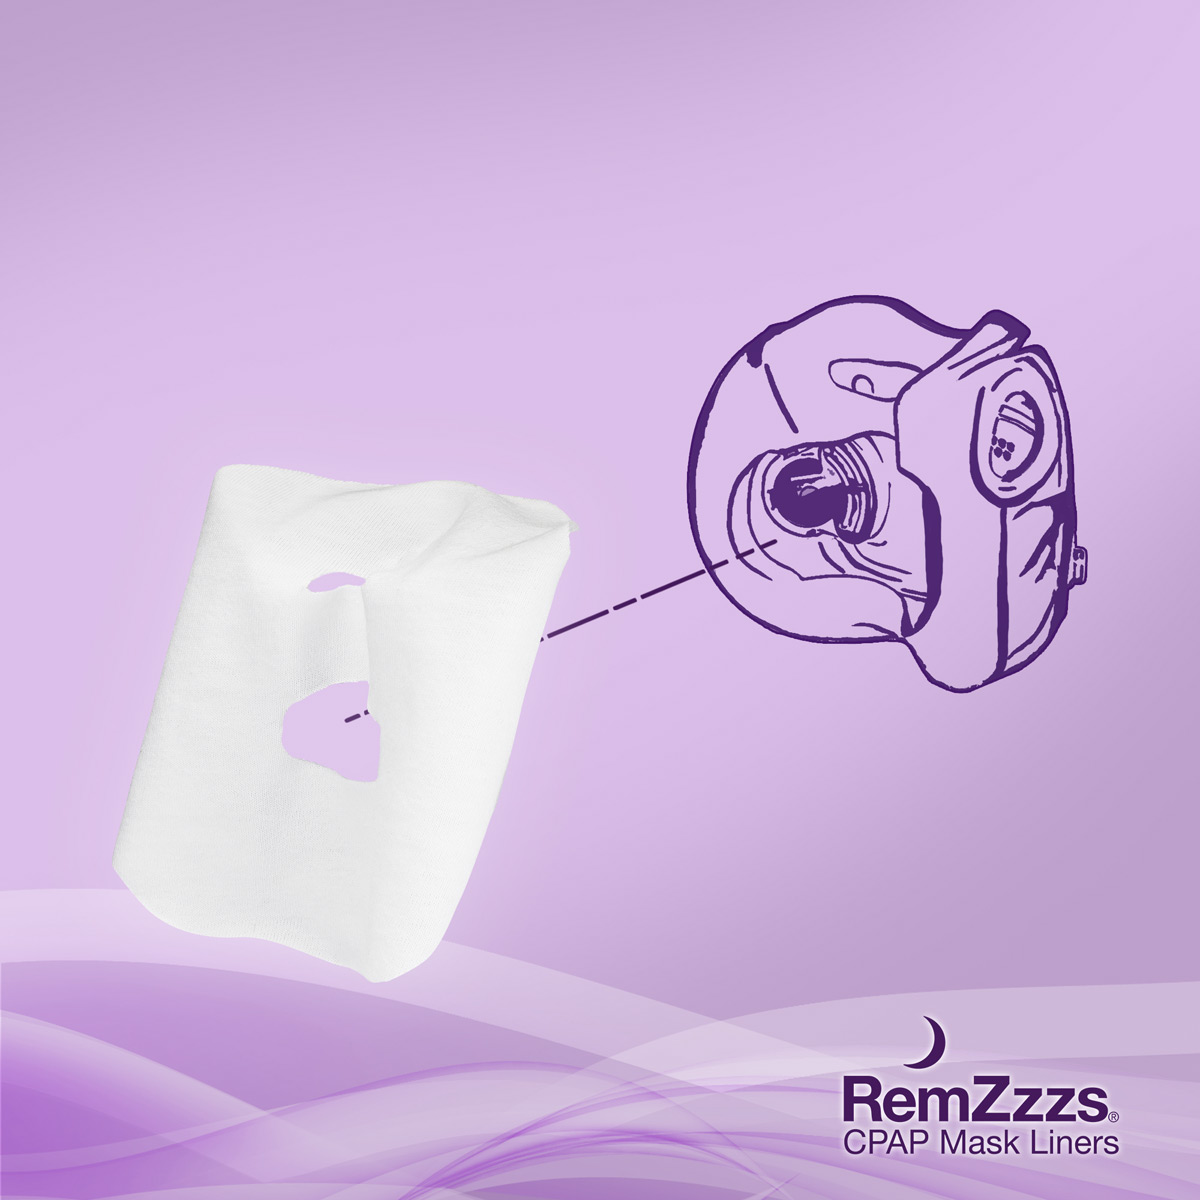 RemZzzs CPAP/BiPAP Mask Liners for Minimal Contact Full Face Masks (30-Night Supply)